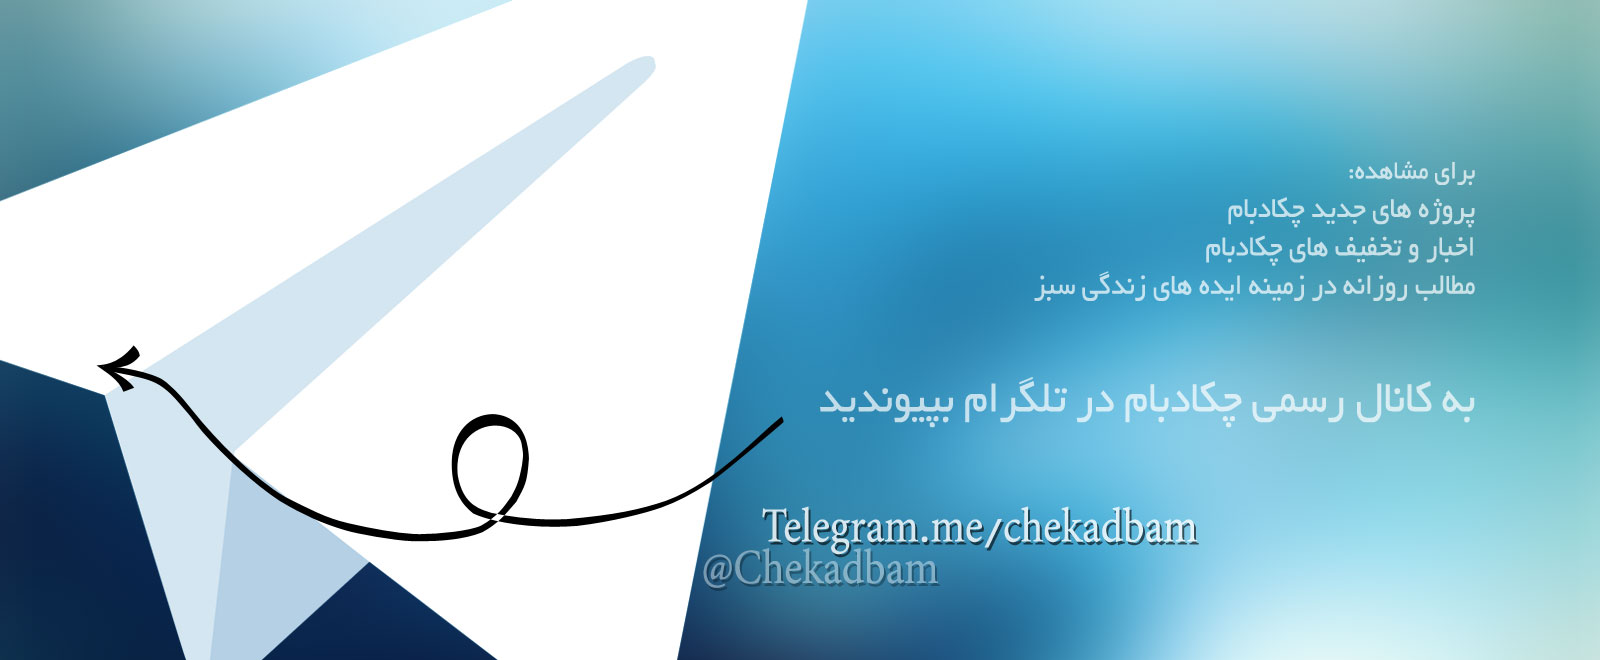 chekadbam official telegram channel company logo